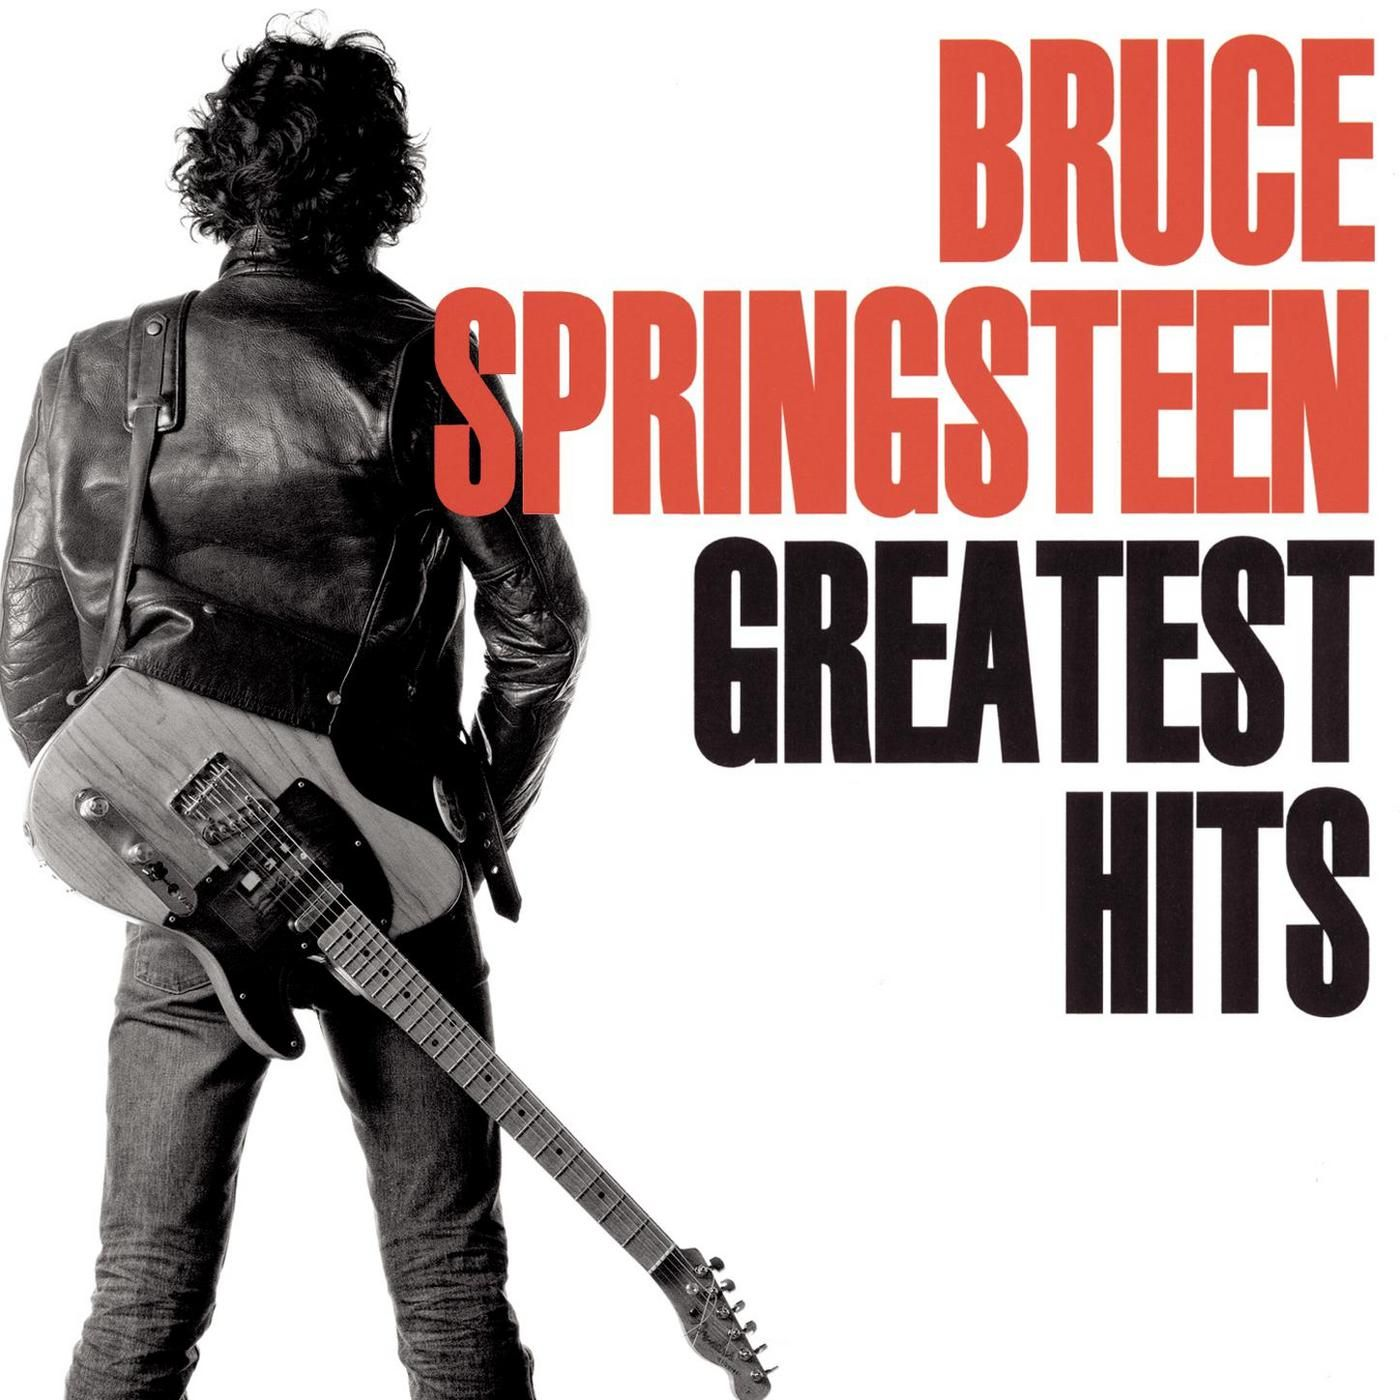 Bruce Springsteen - Greatest Hits album cover